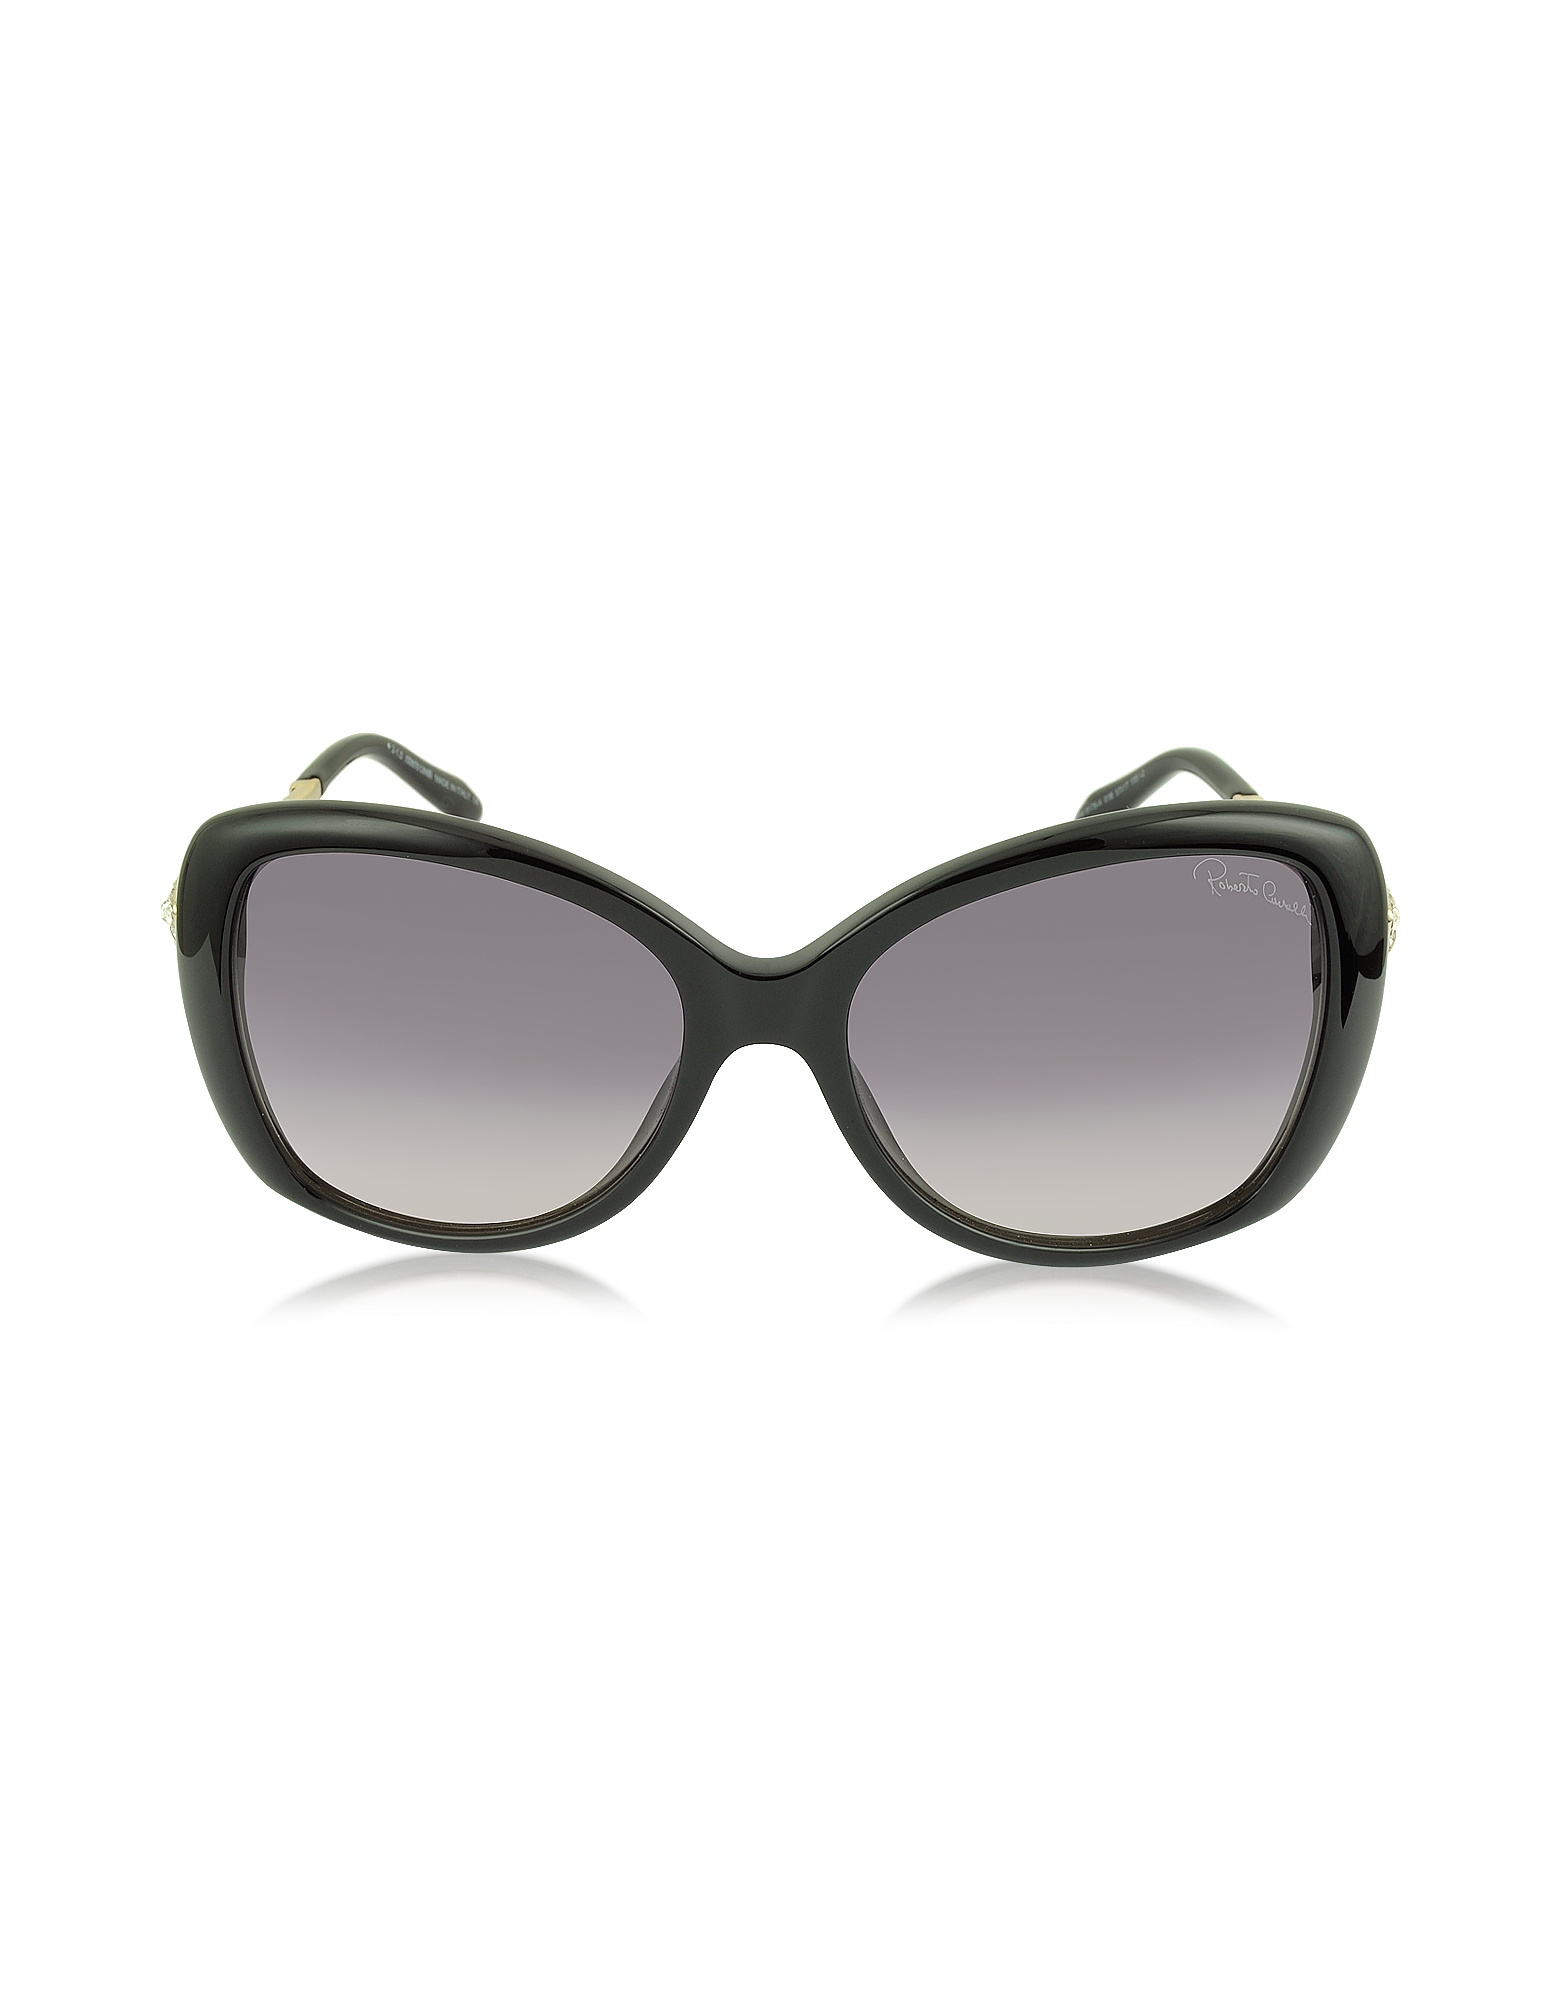 Roberto Cavalli Sunglasses, Mizar 917S-A Black Acetate Women's Sunglasses w/Crystals